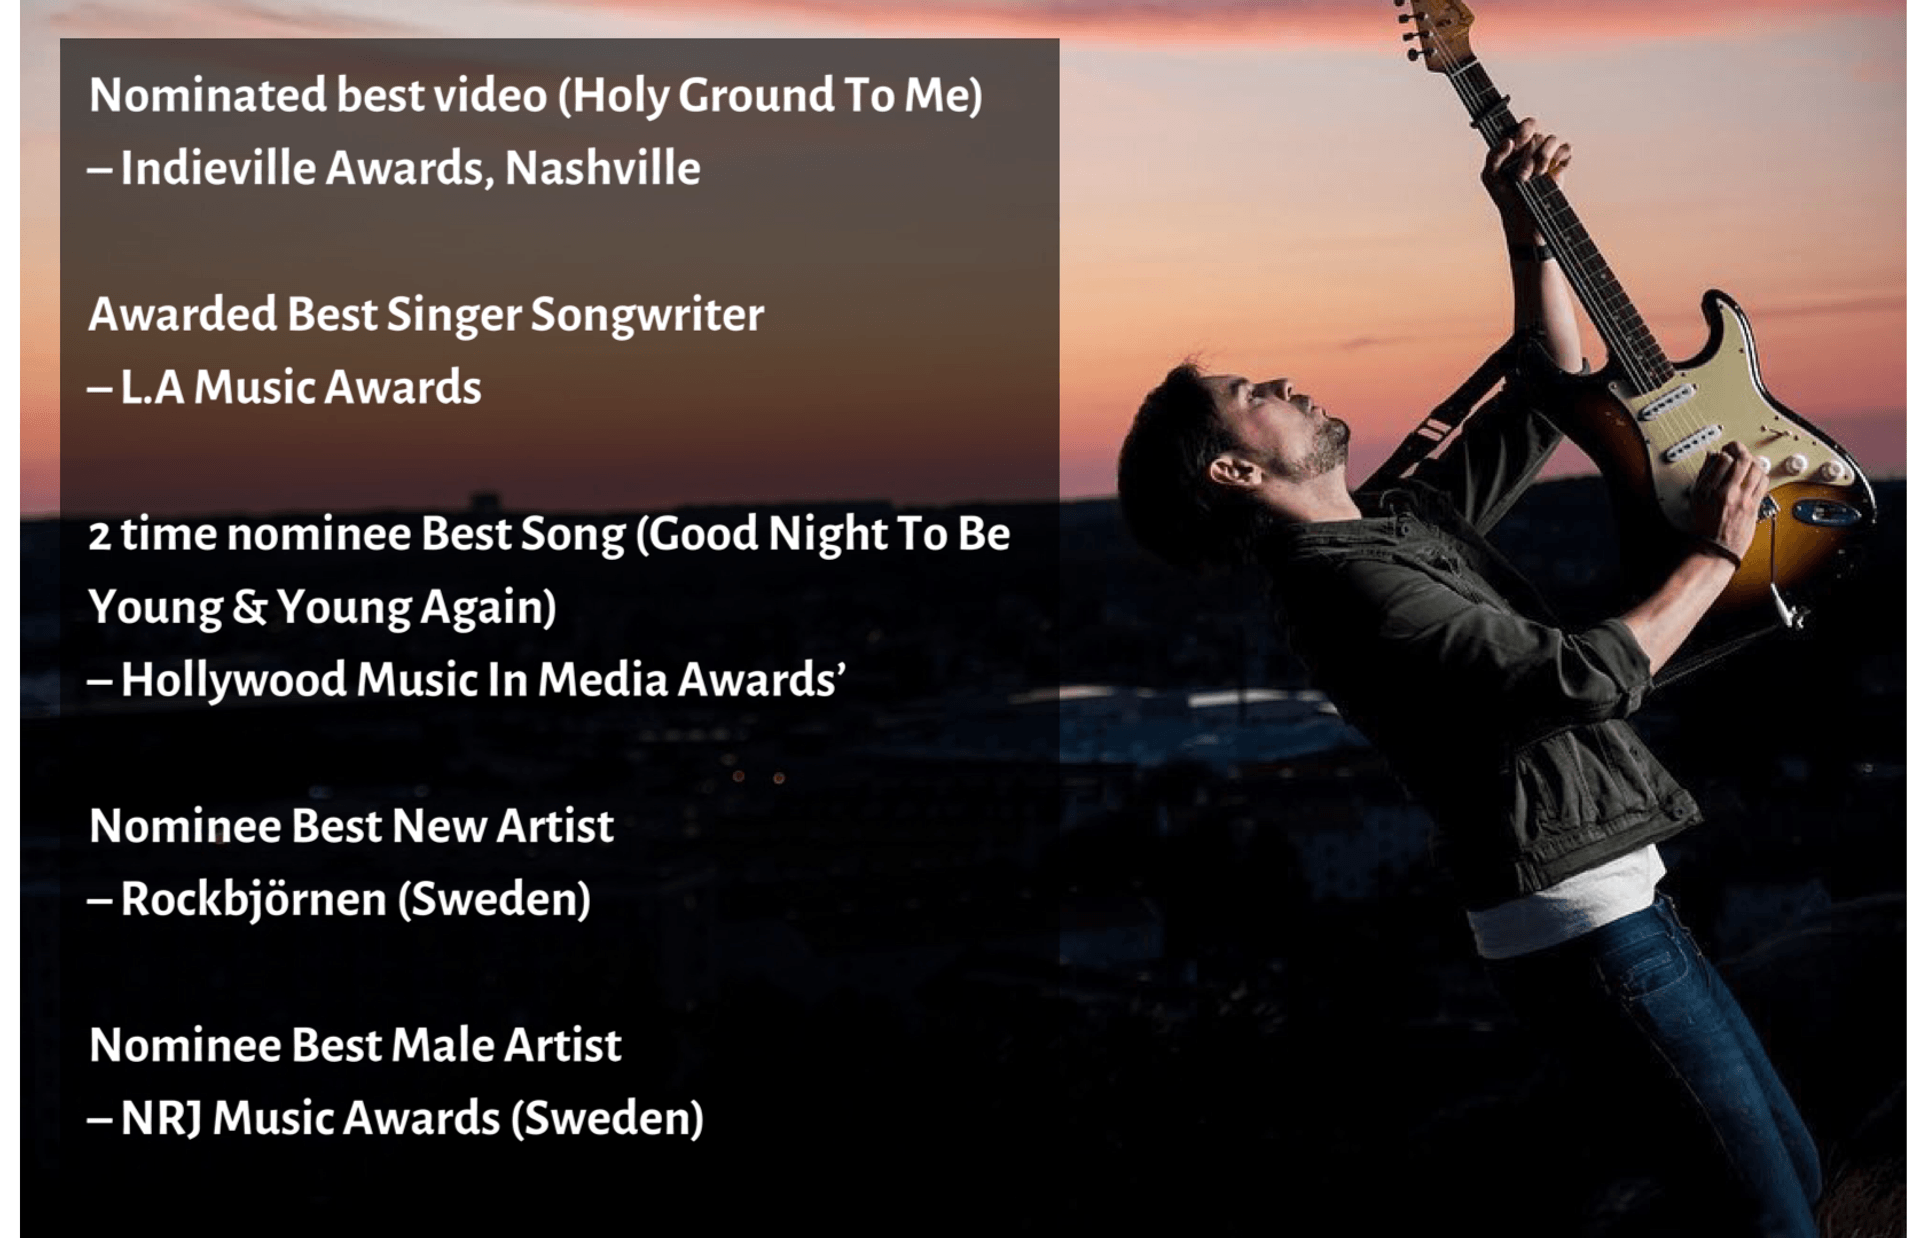 Nominated best video (Holy Ground to Me) - Indieville Awards, Nashville. Awarded best singer songwriter - L.A Music Awards. 2 time nominee best song (Good Night To Be Young & Young Again) - Hollywood Music In Media Awards. Nominee Best New Artist - Rockbjörnen (Sweden). Nominee est Male Artist - NRJ Music Awards (Sweden)